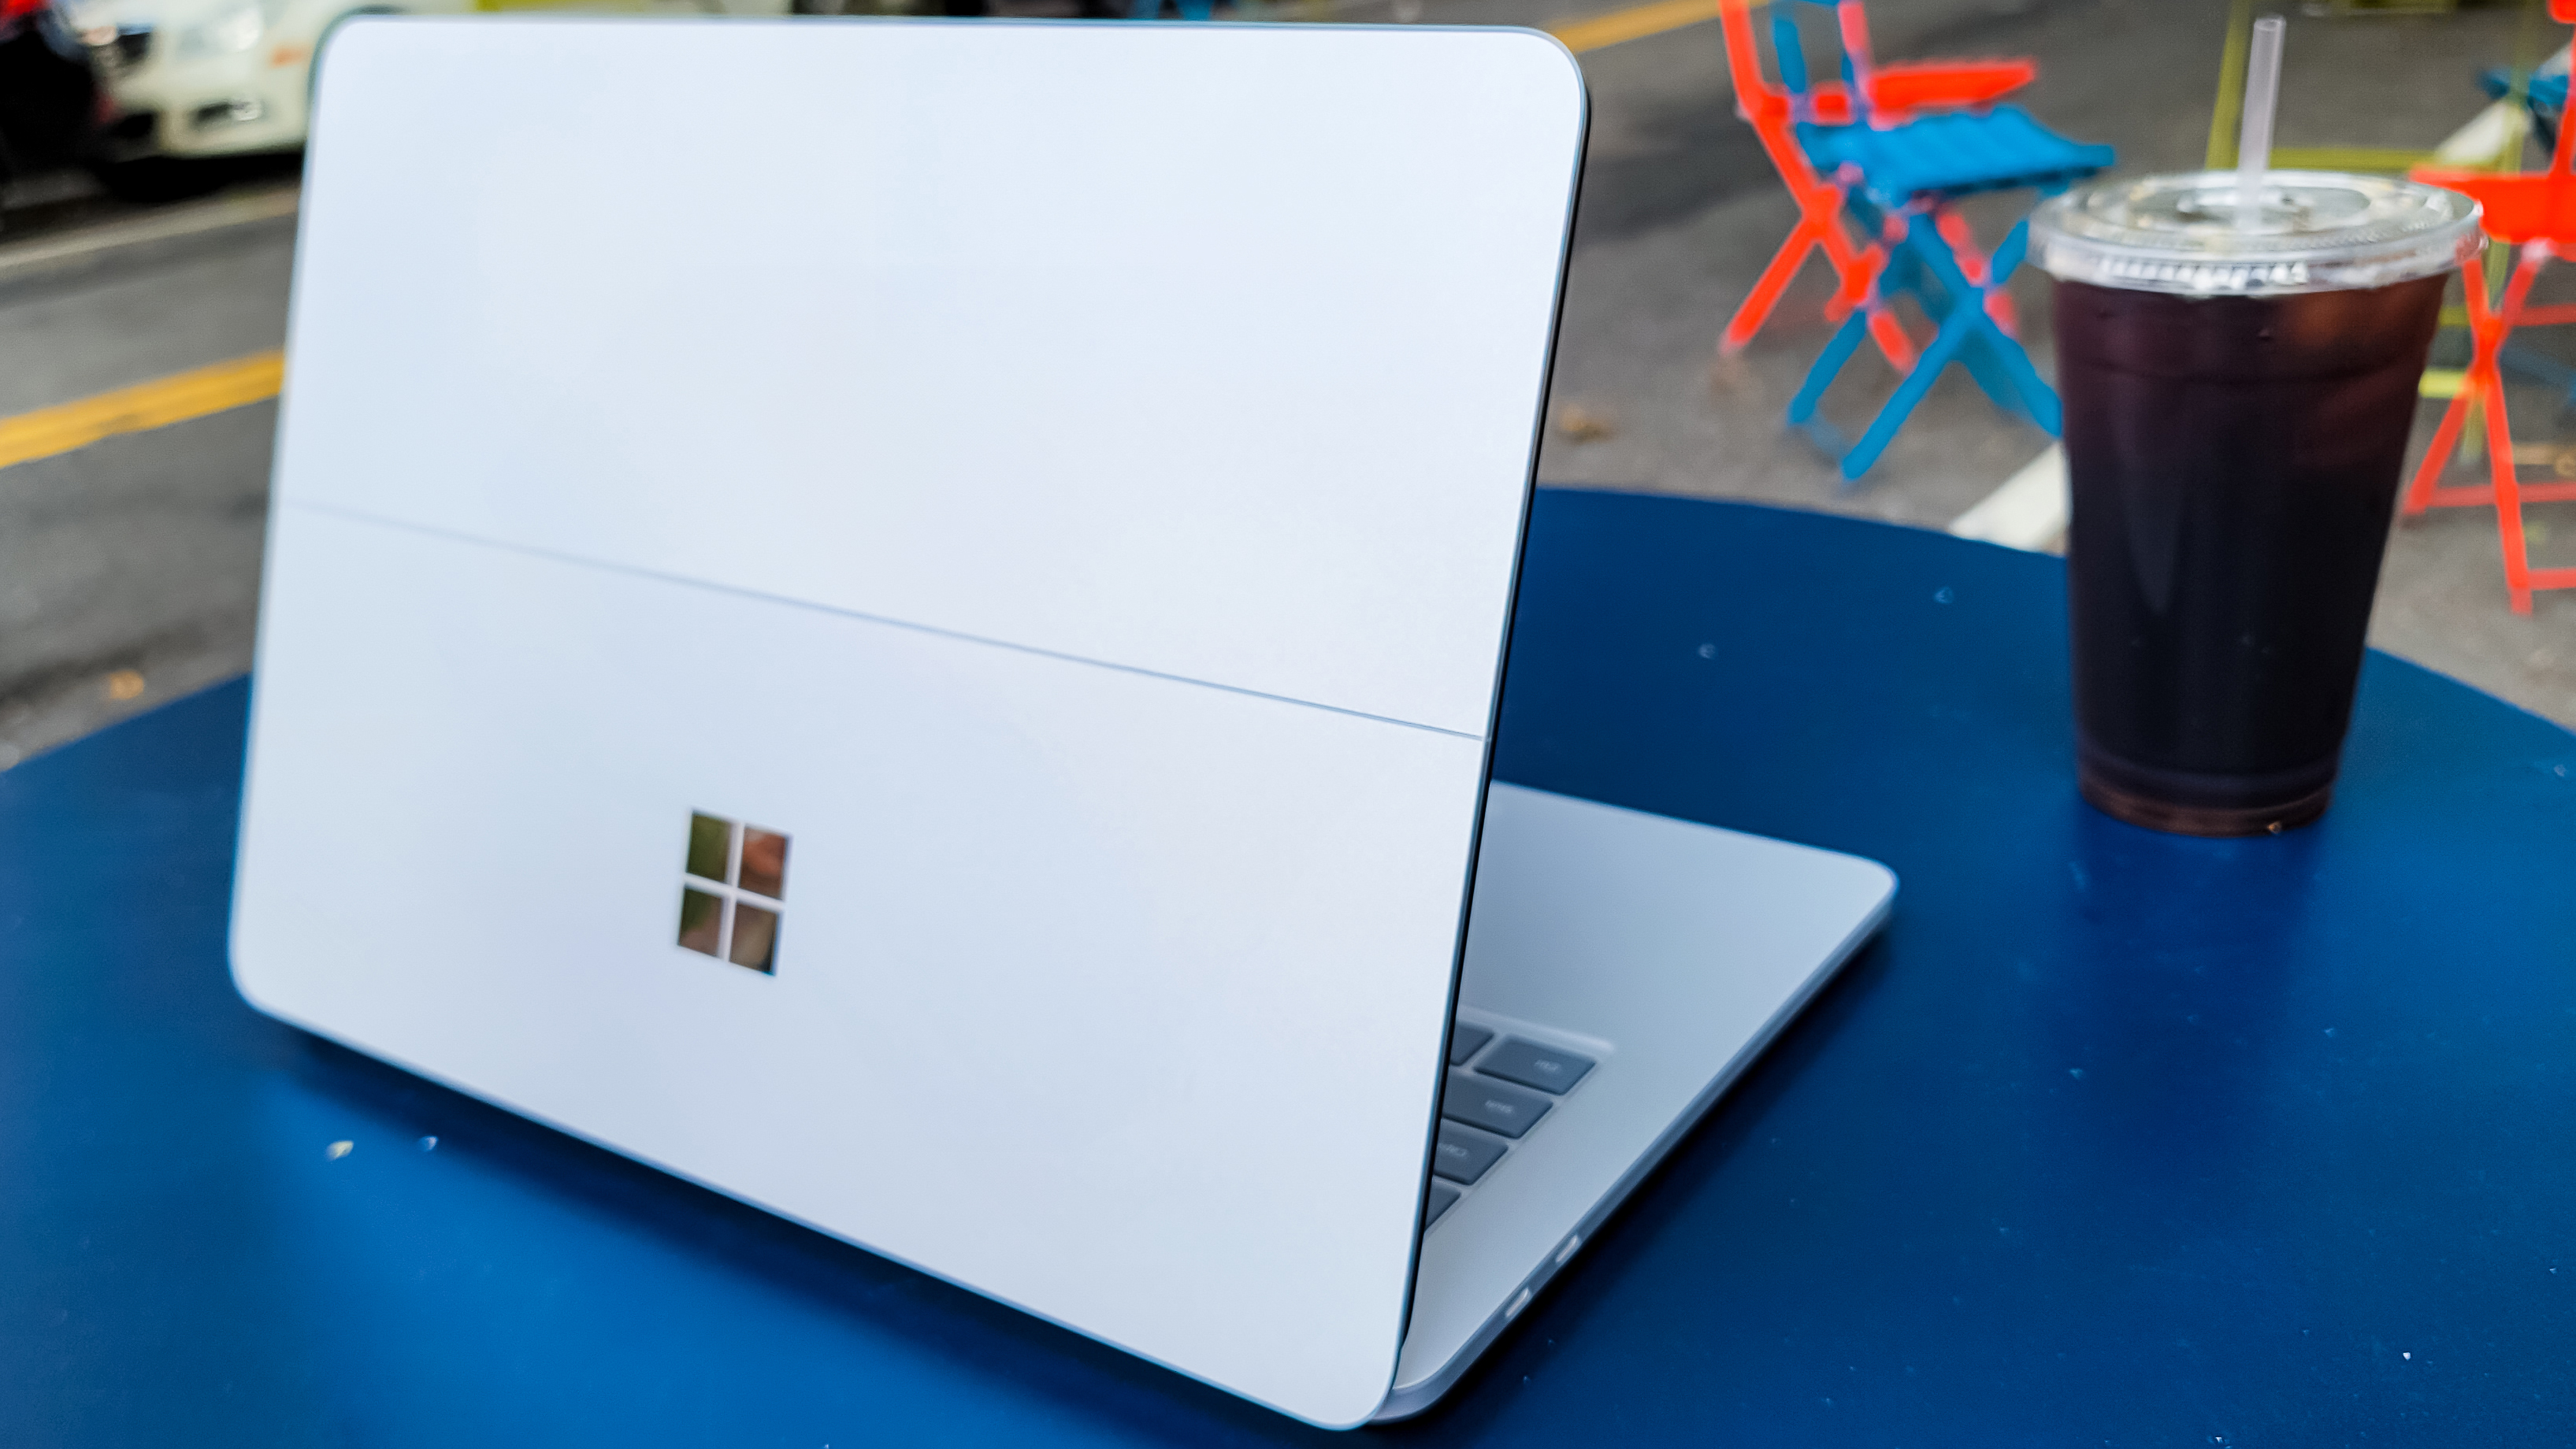 Surface Laptop Studio from behind, on a blue table next to iced coffee